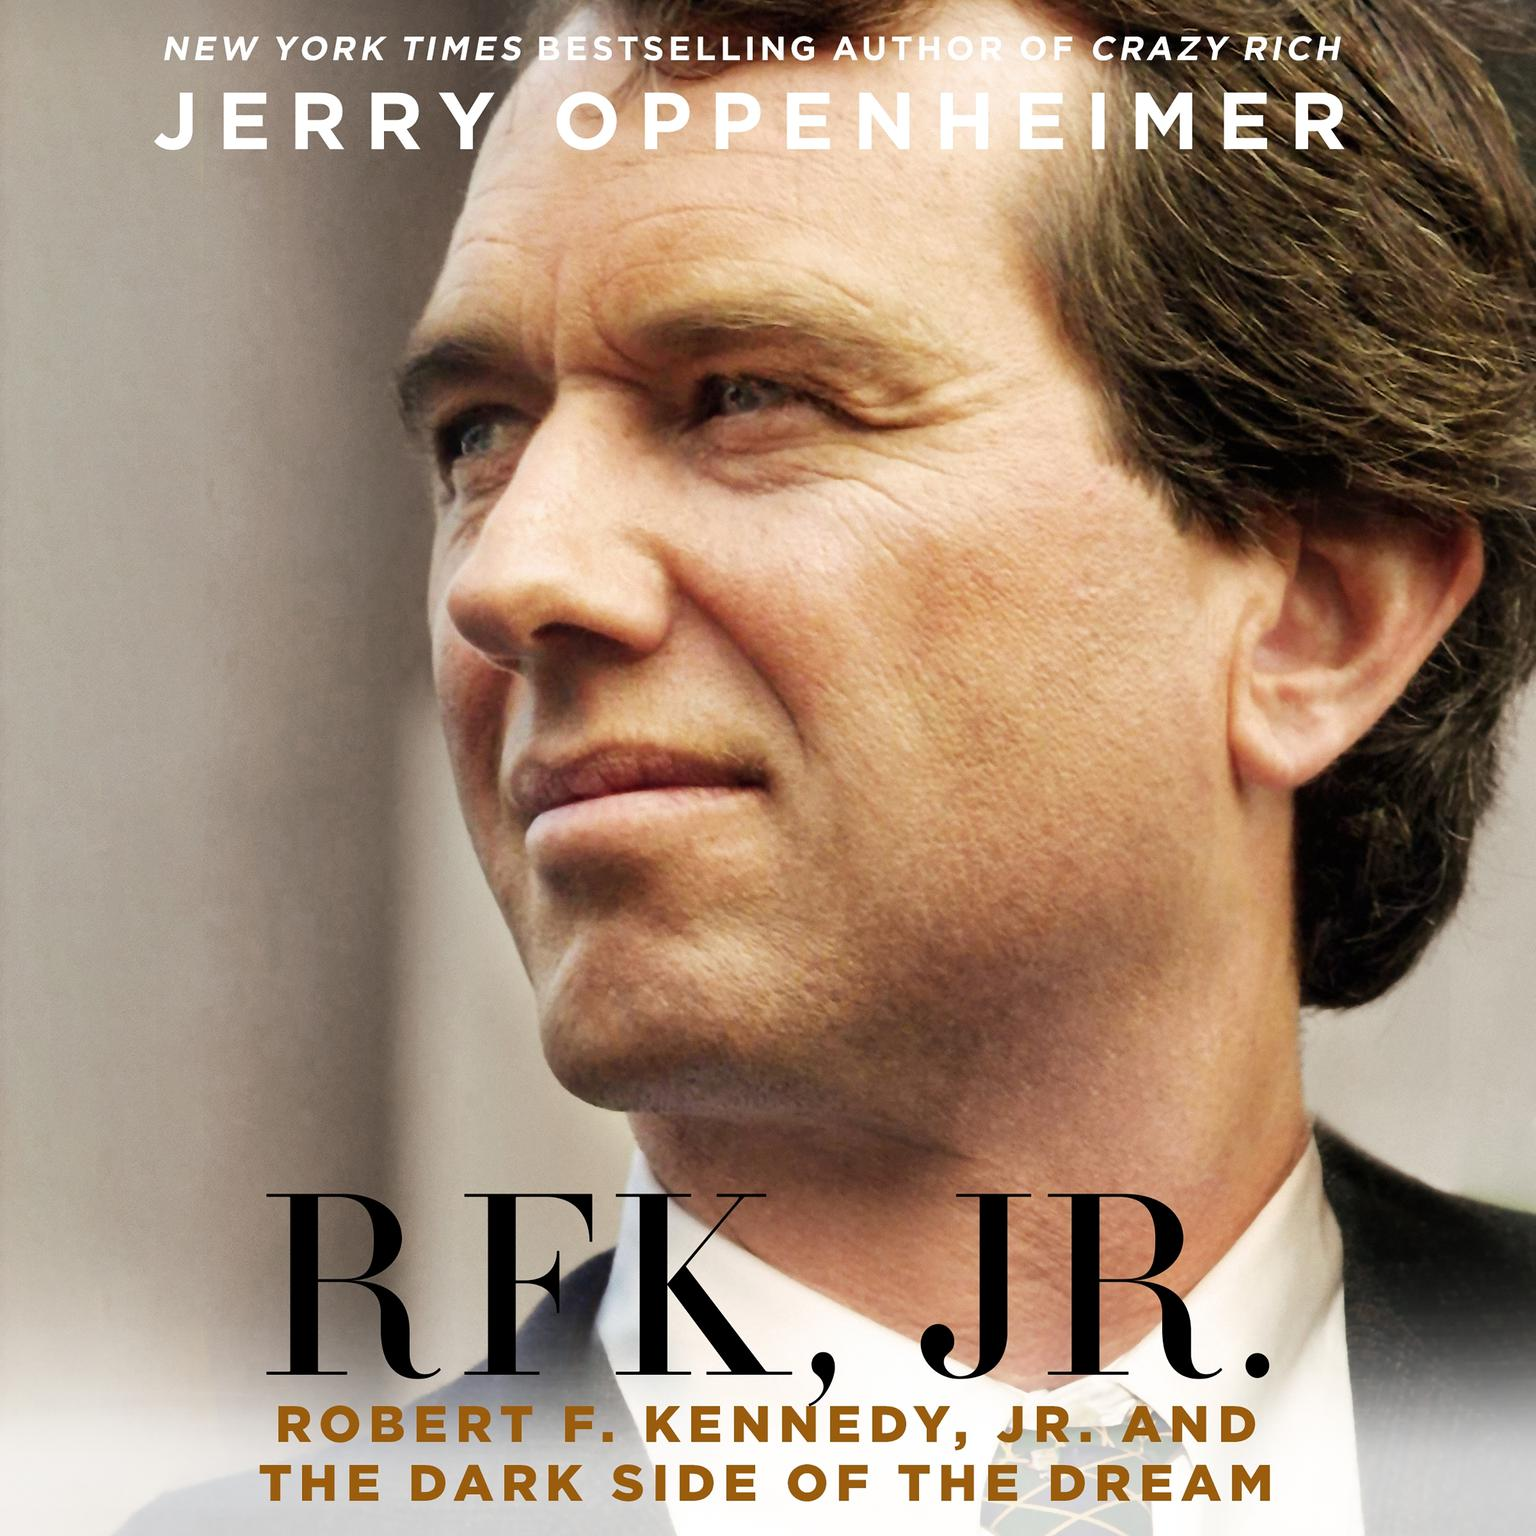 Printable RFK Jr.: Robert F. Kennedy, Jr. and the Dark Side of the Dream Audiobook Cover Art